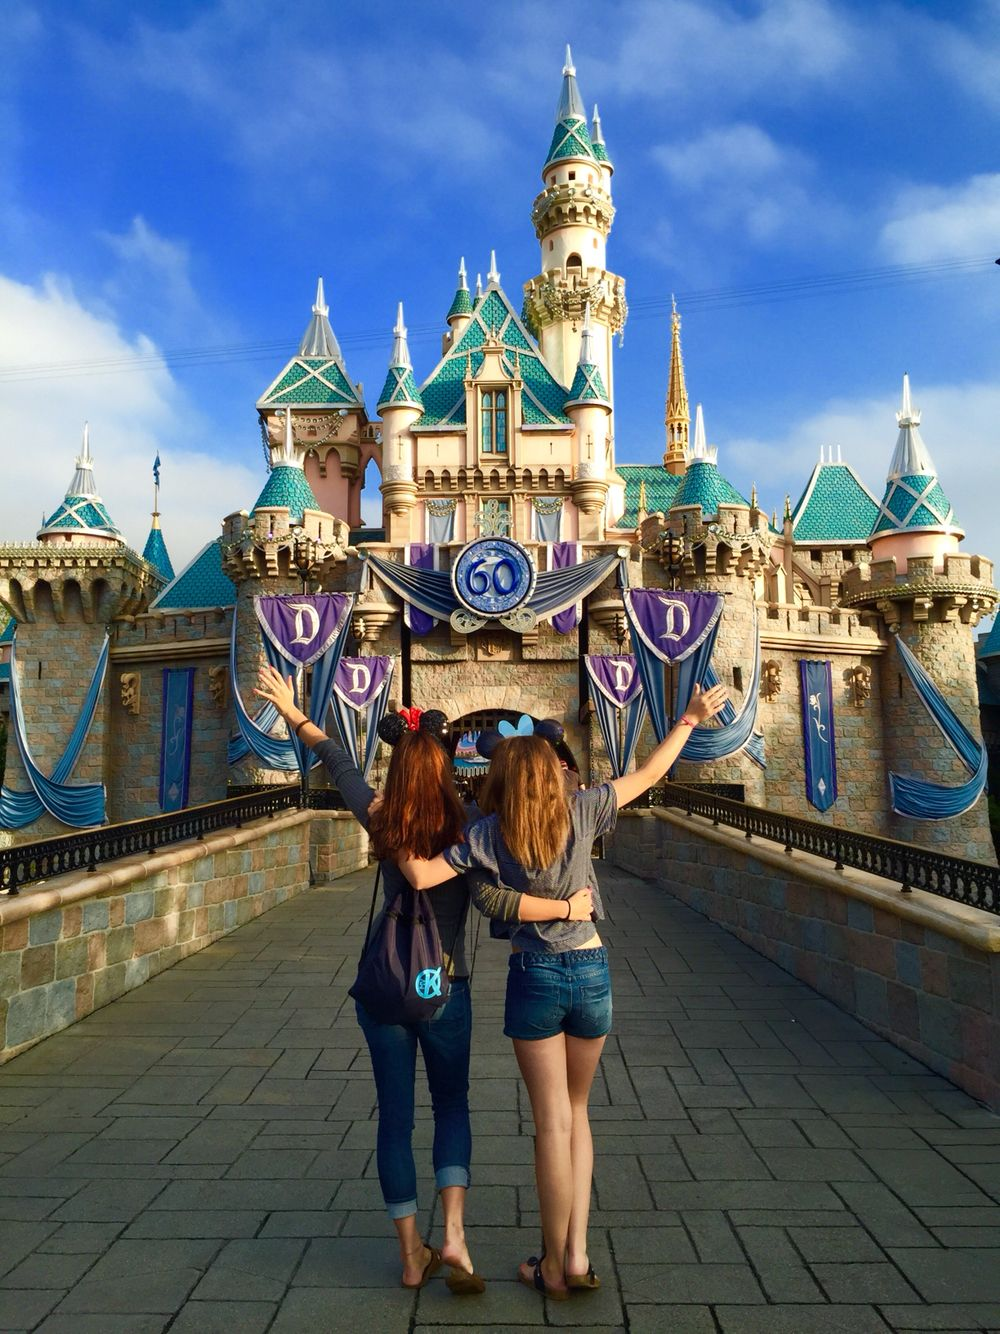 b3c49de669da6 Disneyland Poses with Best Friend